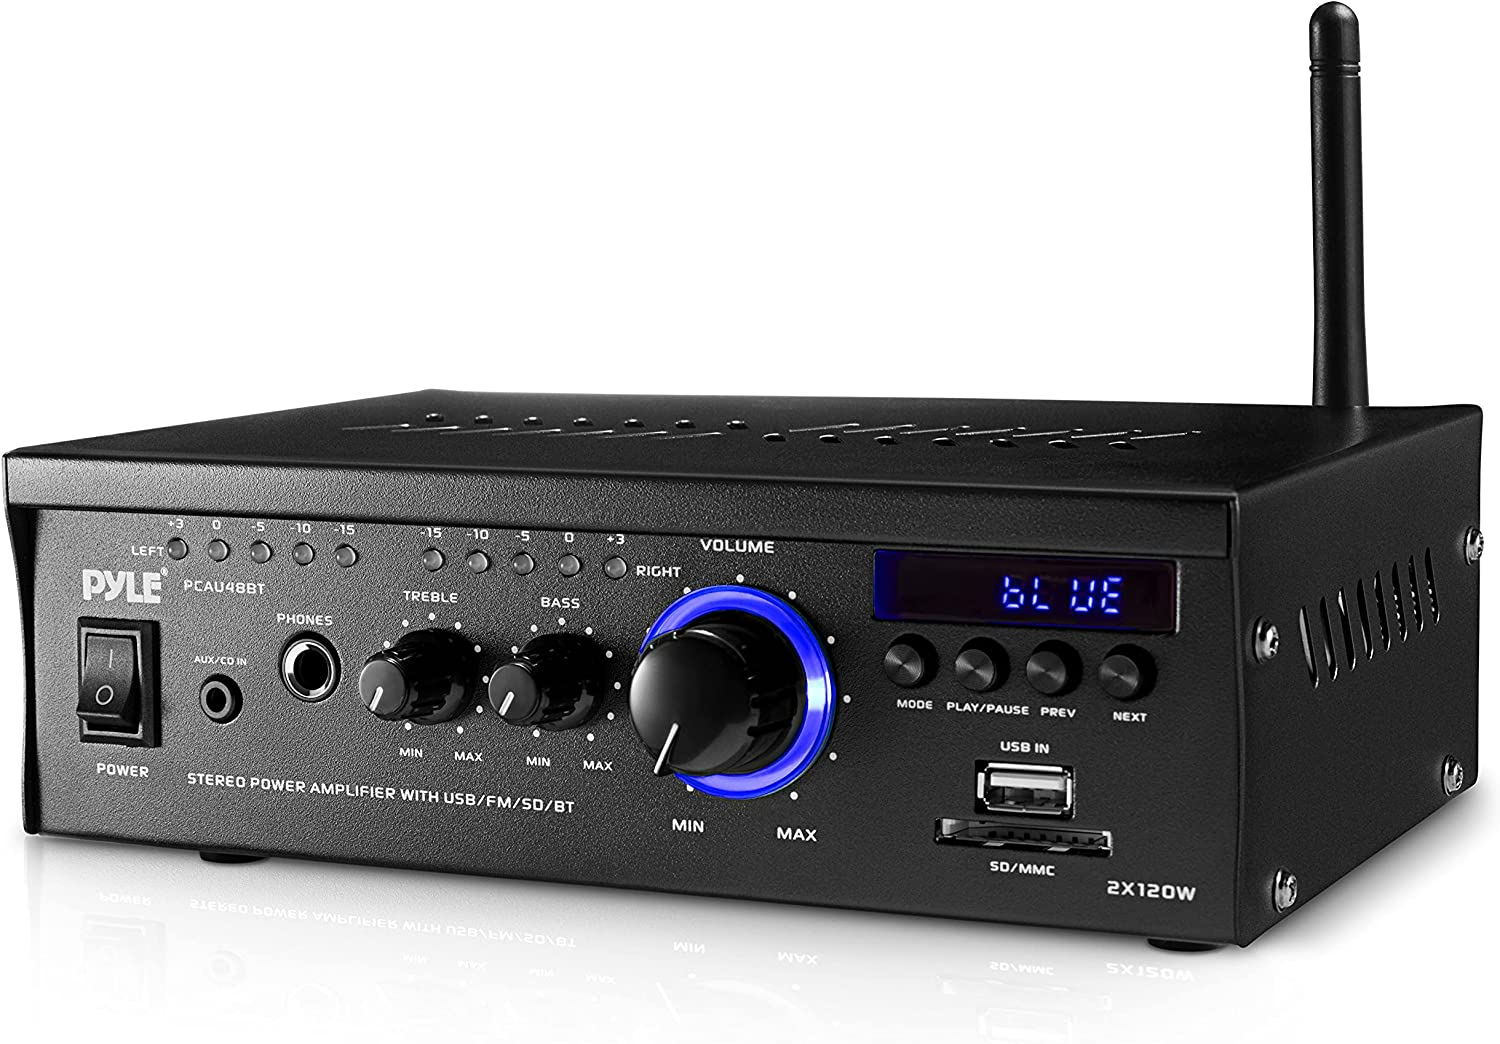 Bluetooth Mini Stereo Power Amplifier - 2x120W Dual Channel Sound Audio Receiver Entertainment w/Remote, for Amplified Speakers, CD DVD, MP3, Theater via 3.5mm RCA Input, Studio Use - Pyle PCAU48BT.5